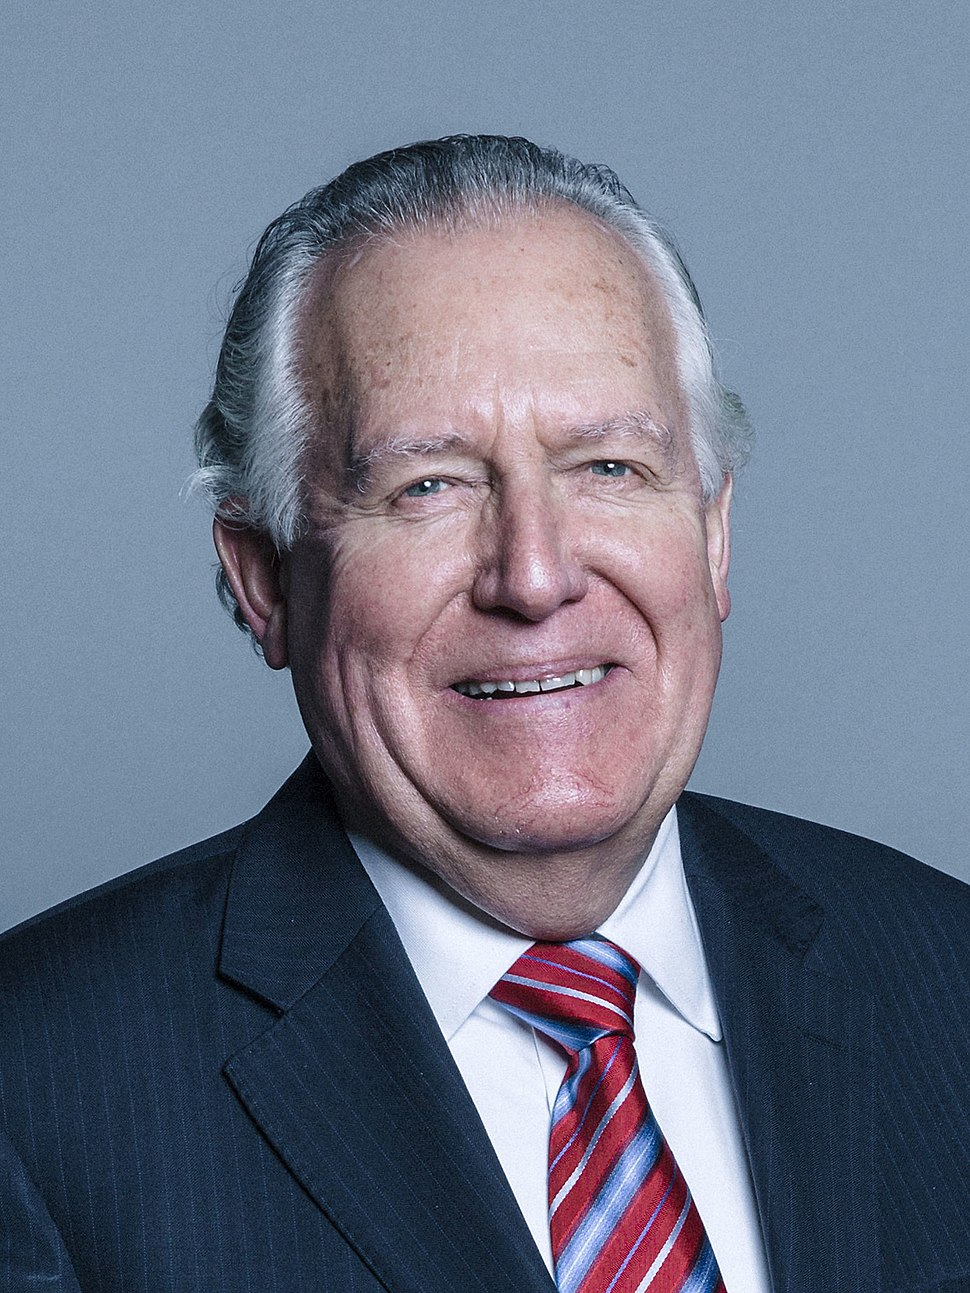 Official portrait of Lord Hain crop 2